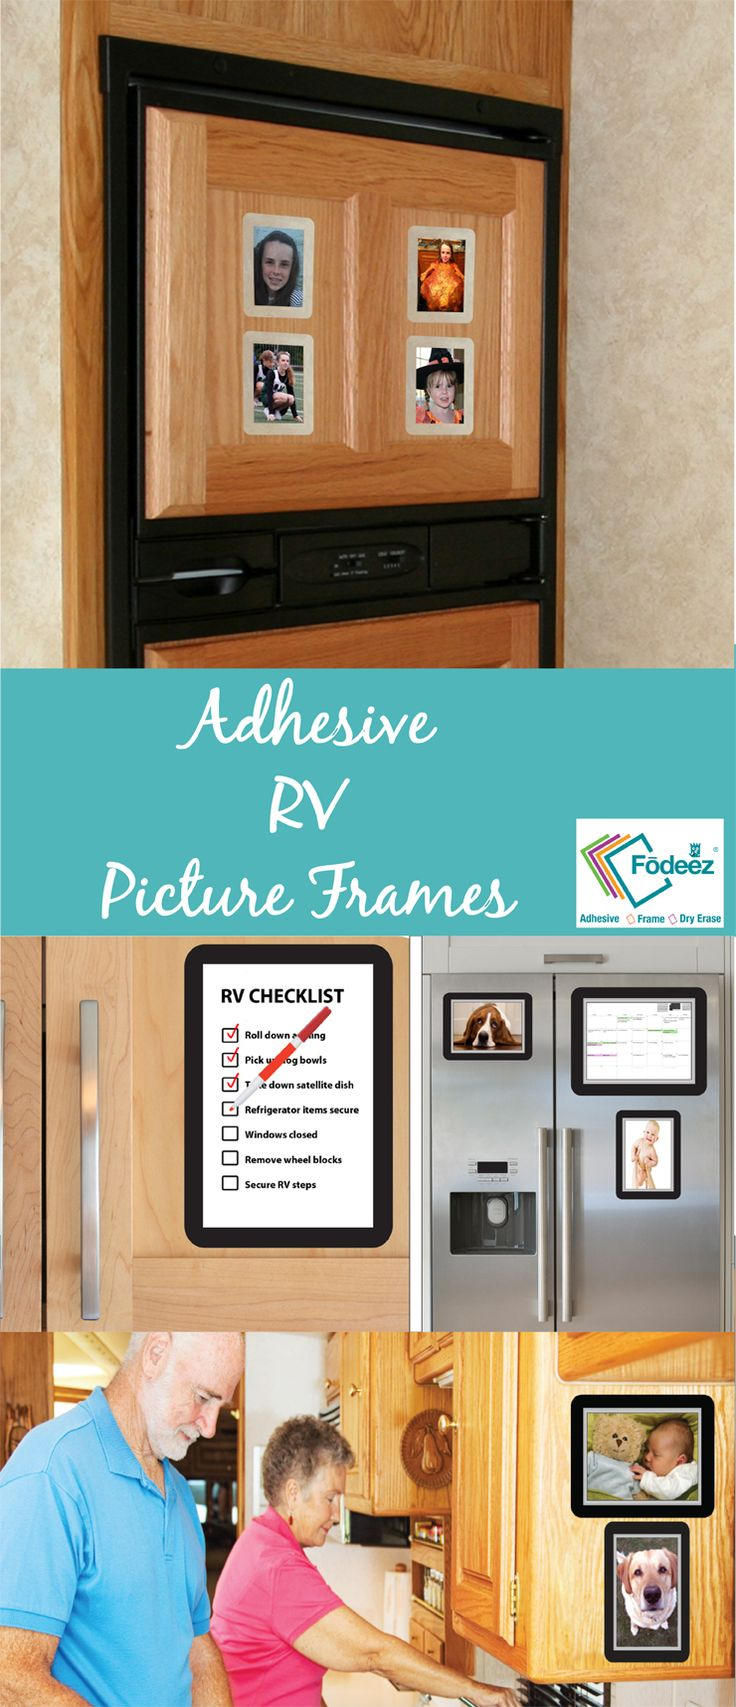 Adhesive RV Picture Frames: Yes, they do exist! With our patent-pending Fodeez® Frames, you can easily display pictures on any smooth surface within your rig. Imagine stopping in at a new campground or resort and making new friends. Show how warm and cozy your home away from home is with great photos of your grandchildren, pets or the landscape pictures of the places you've visited. Fodeez Adhesive Dry Erase Photo Frames are what you've been looking for!